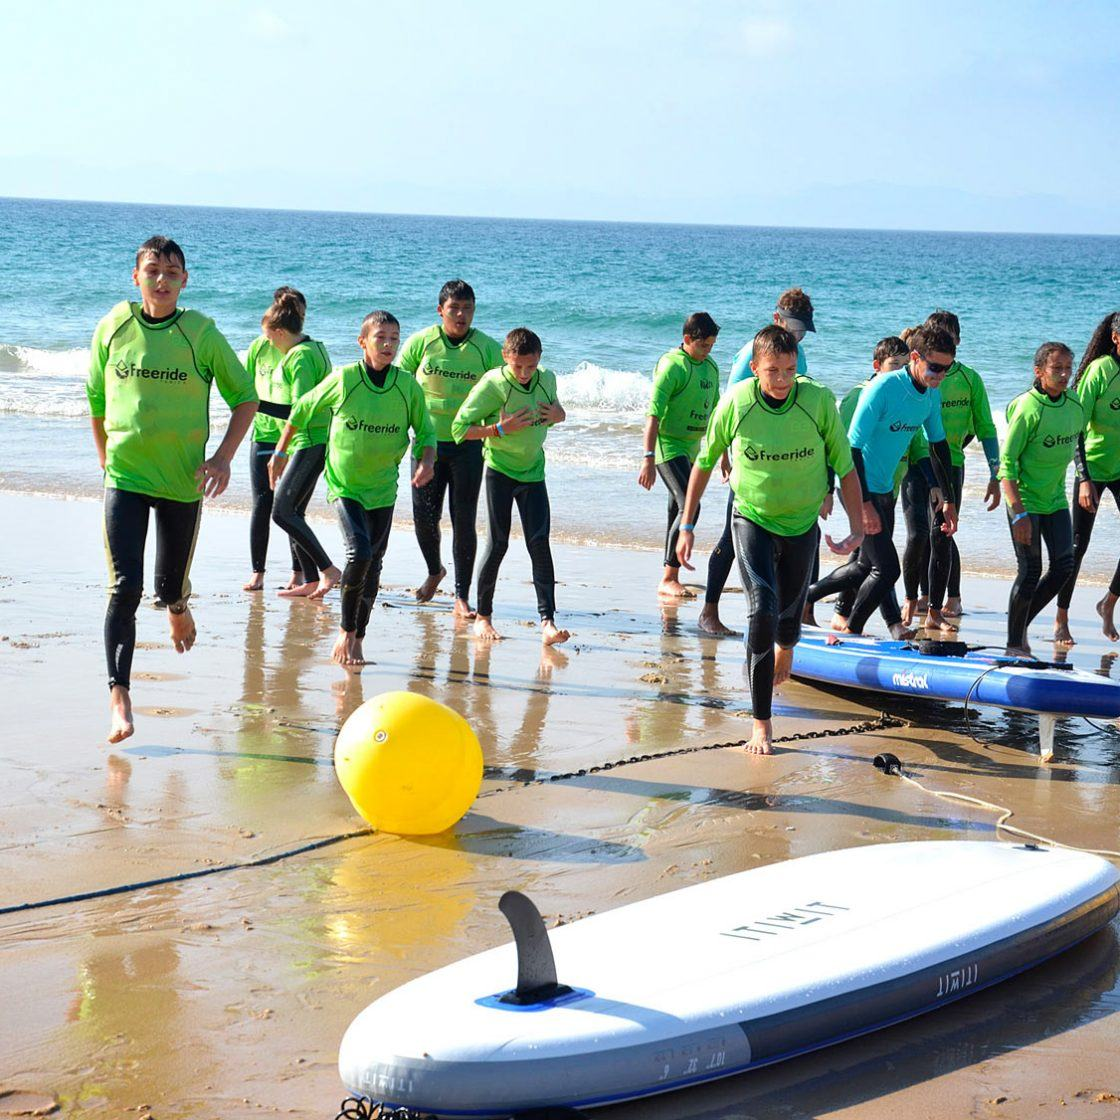 kiteschool, stand up paddle